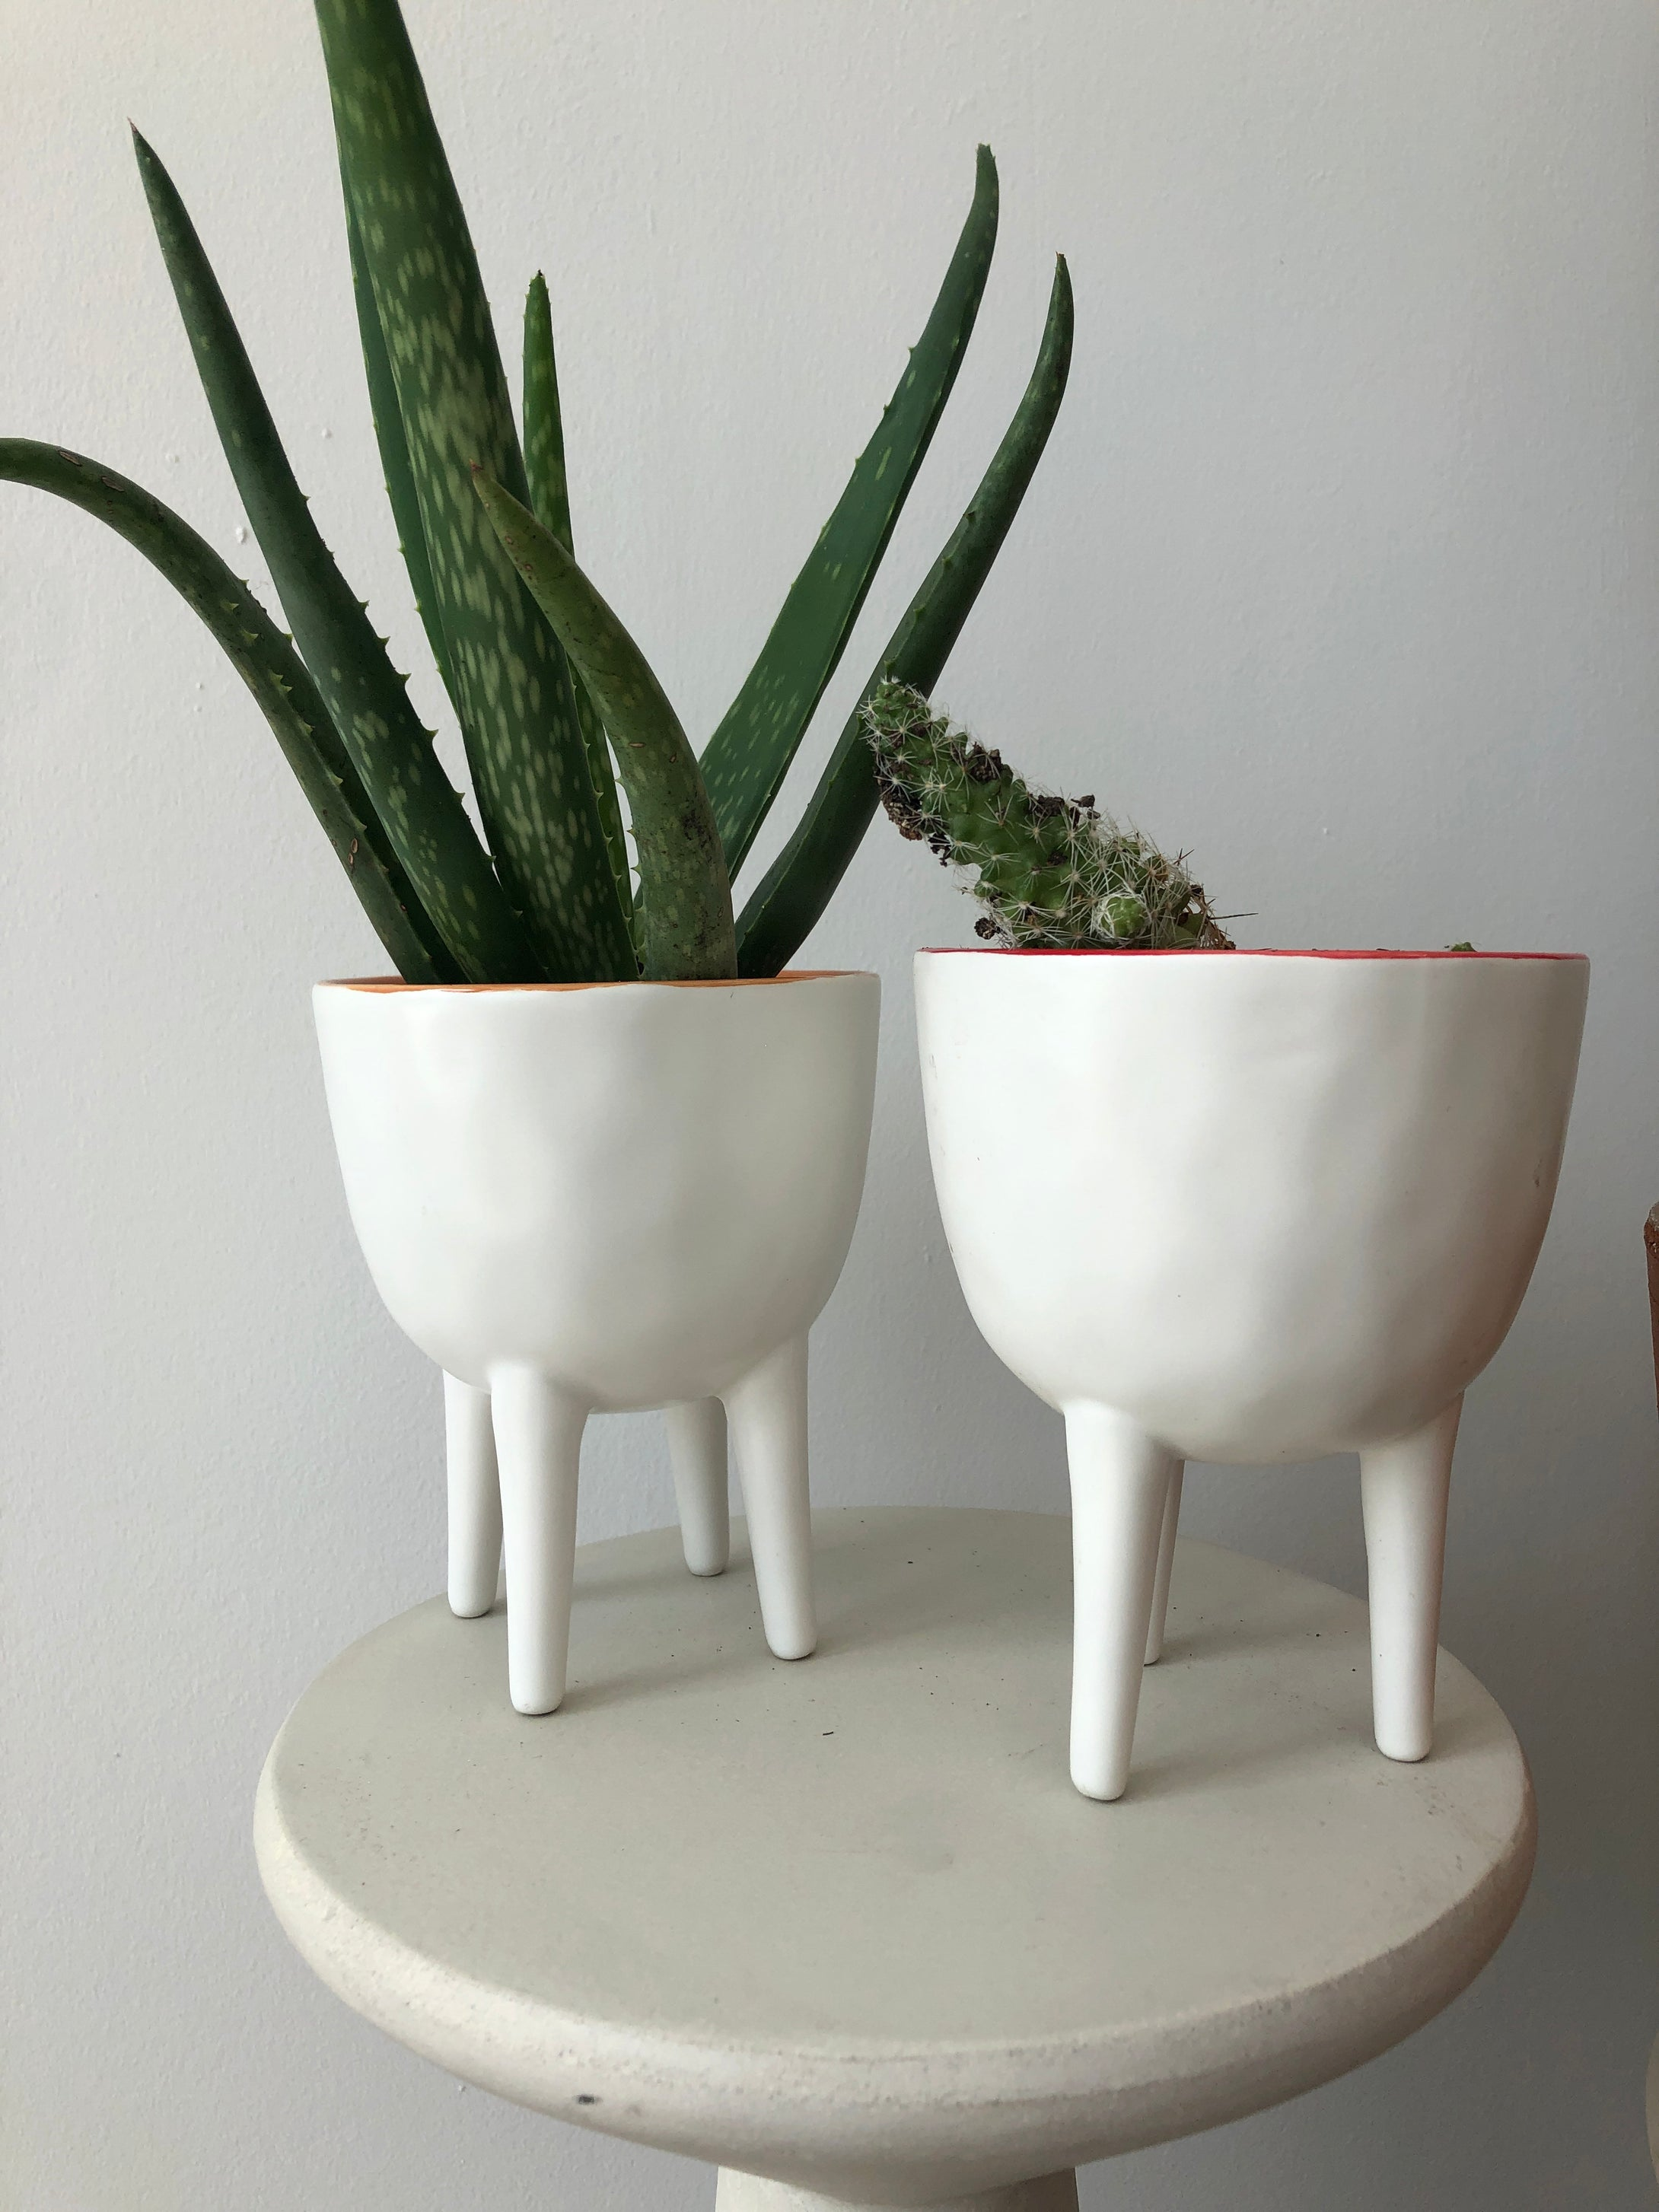 Ceramic White 4 Legged Pots